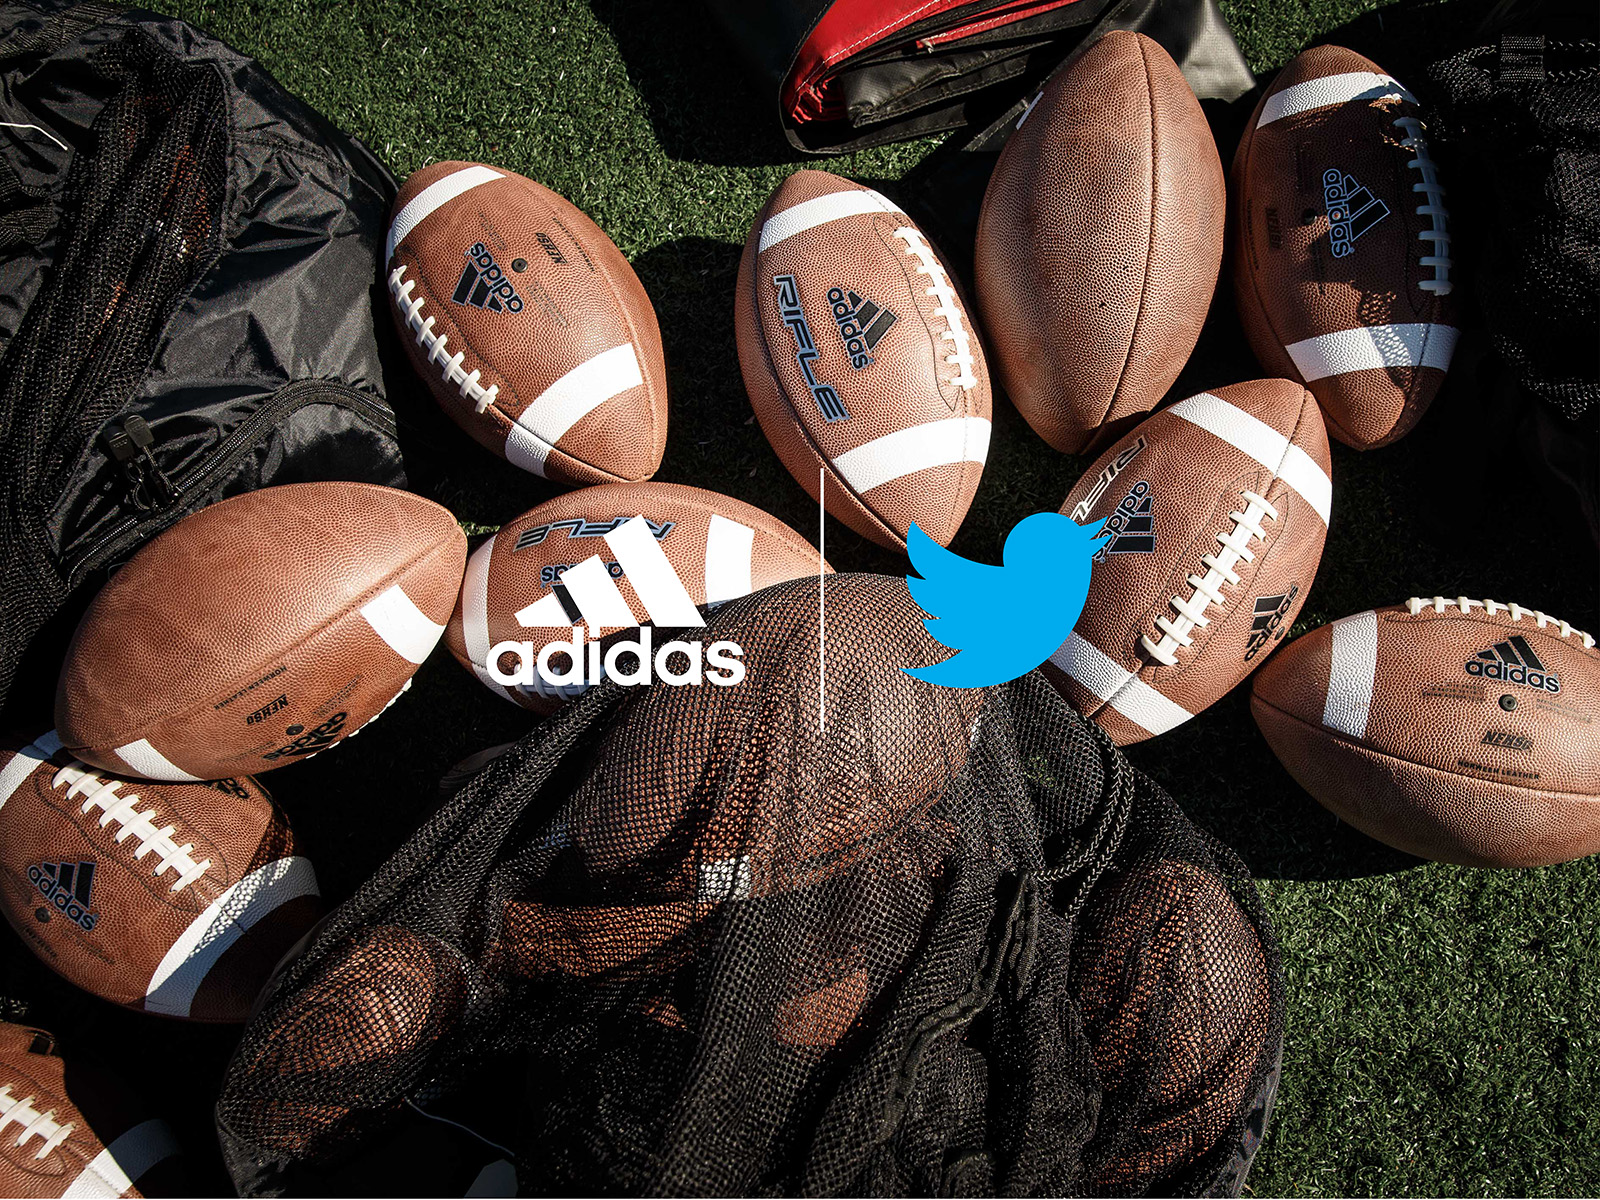 'Friday Night Stripes': adidas & Twitter to Live-Stream Football Games